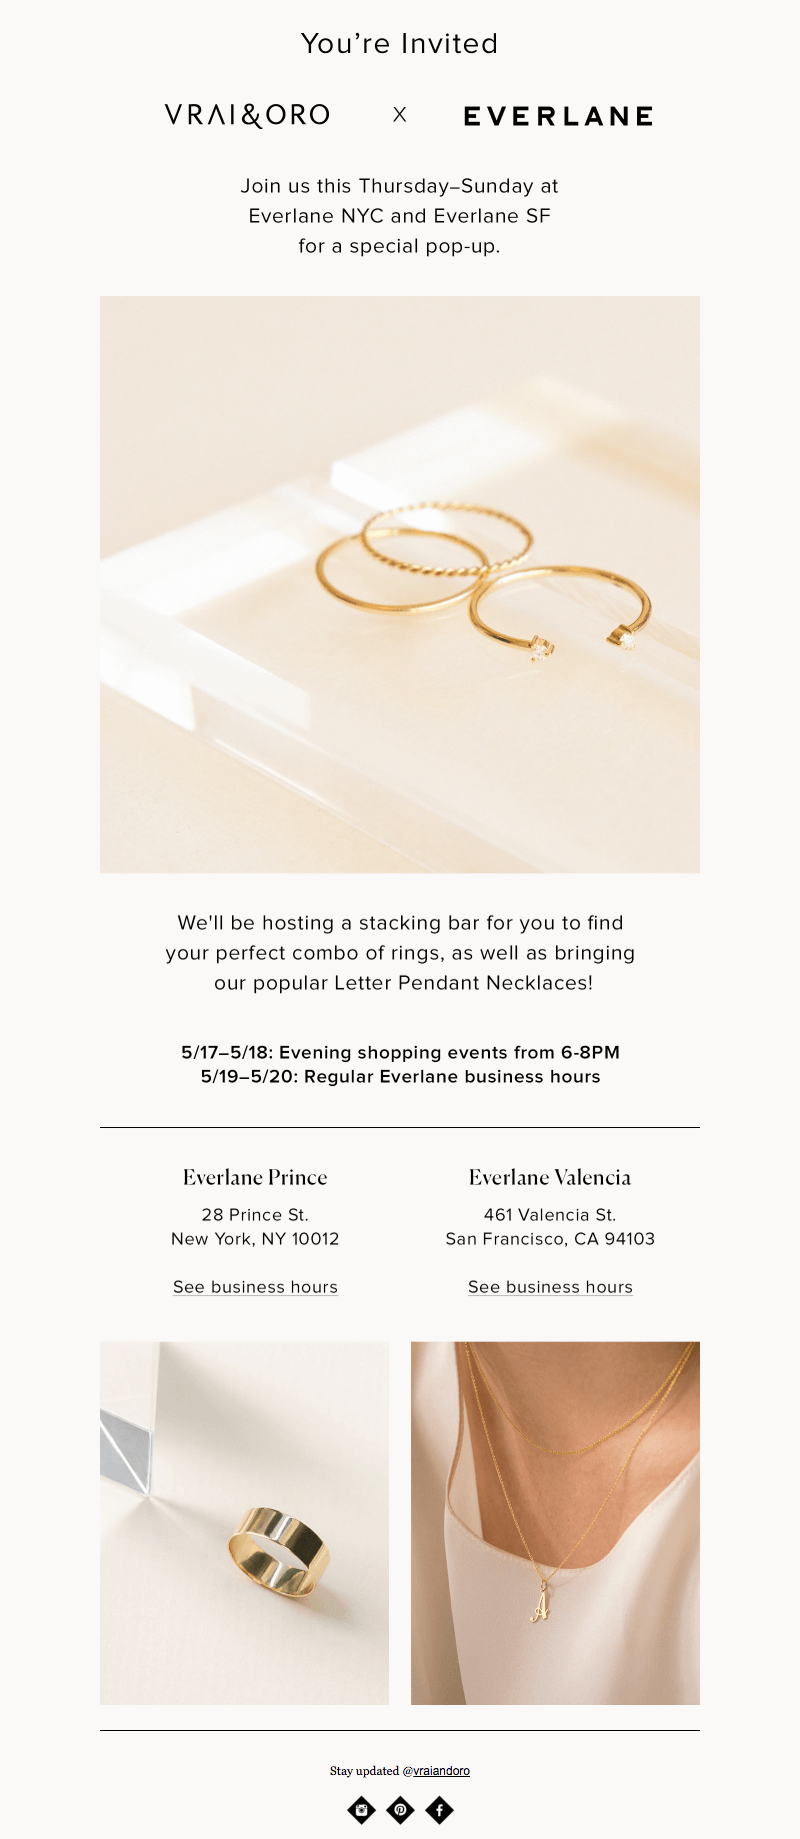 Vrai & Oro Everlane brand collaboration emails